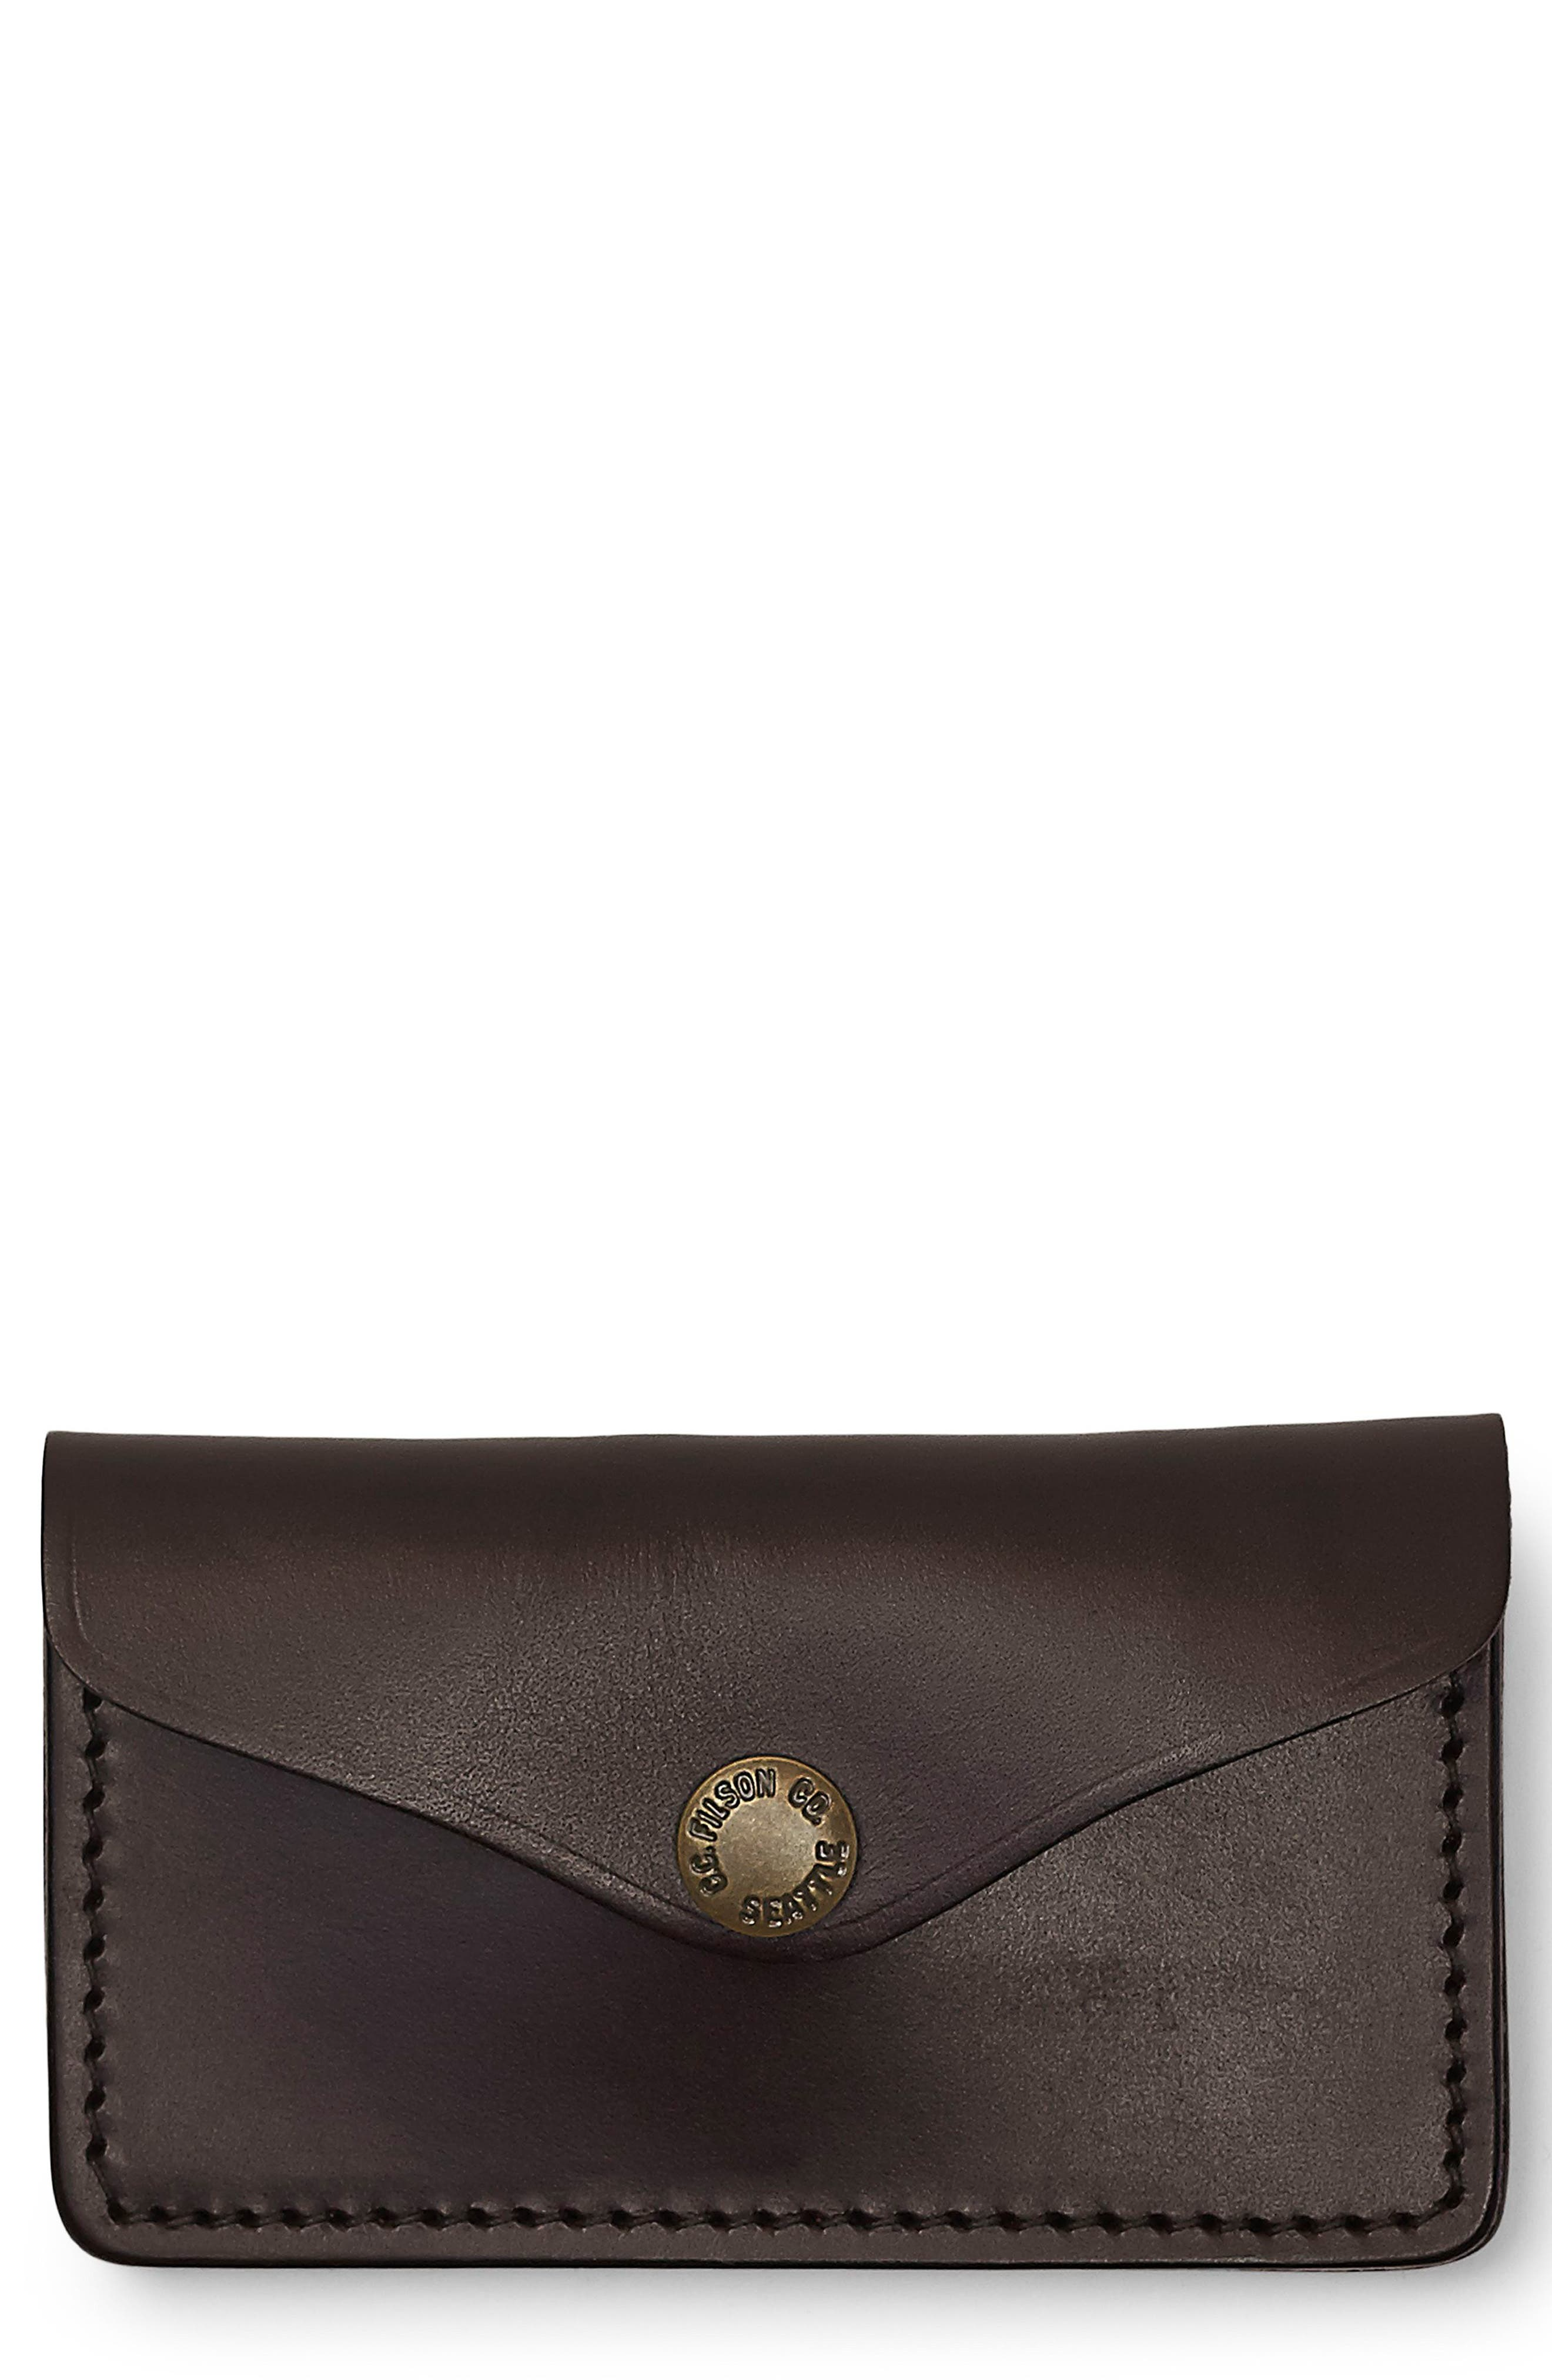 Snap Leather Wallet,                         Main,                         color, Brown